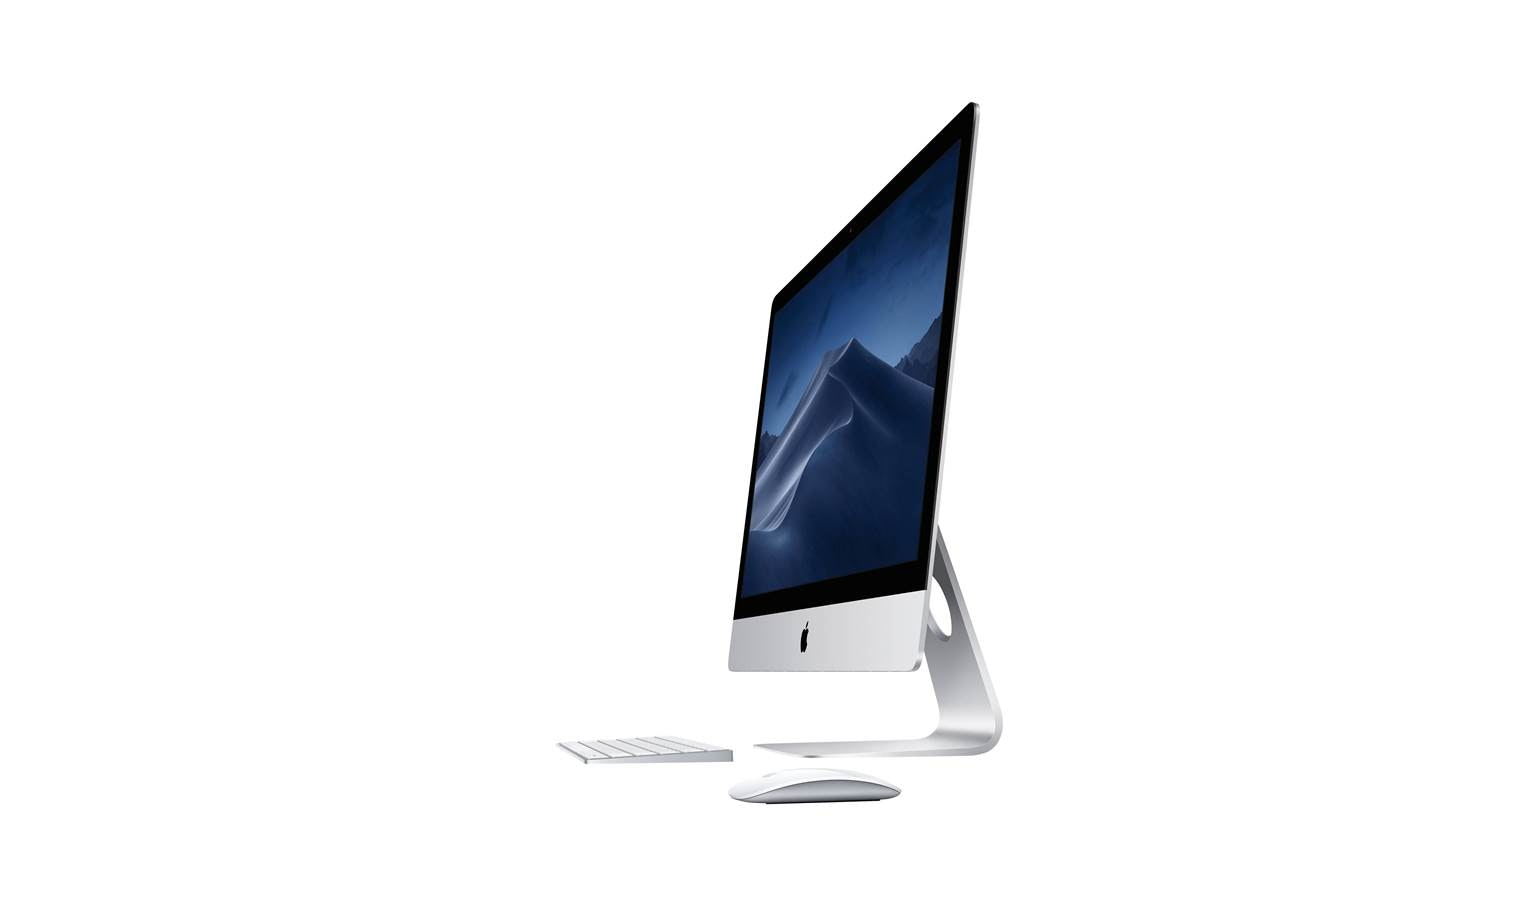 "Apple iMac 27.0"" 3.0 GHz with Retina 4K Display (Overview)"